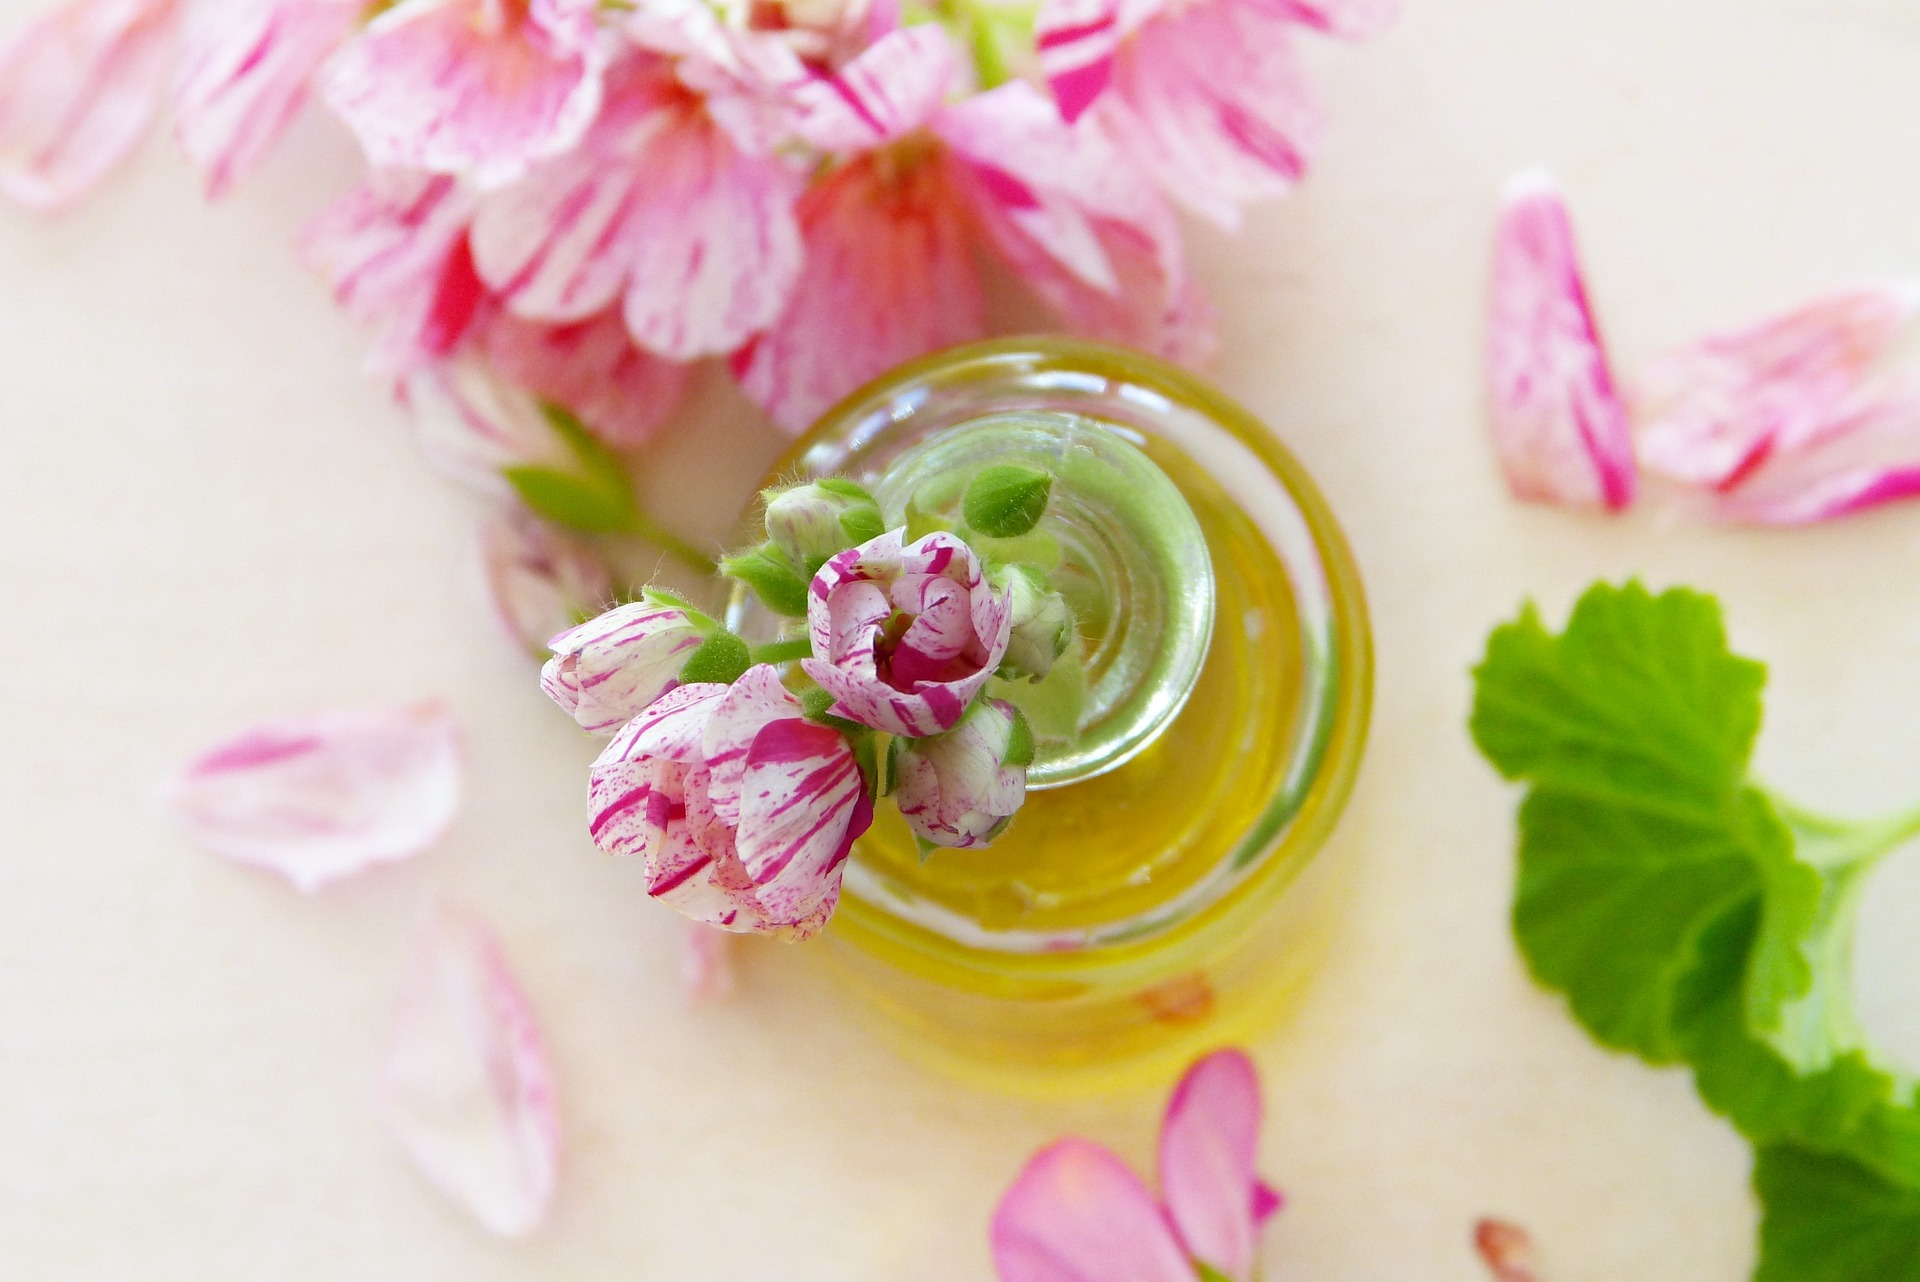 Natural and organic beauty product recipes